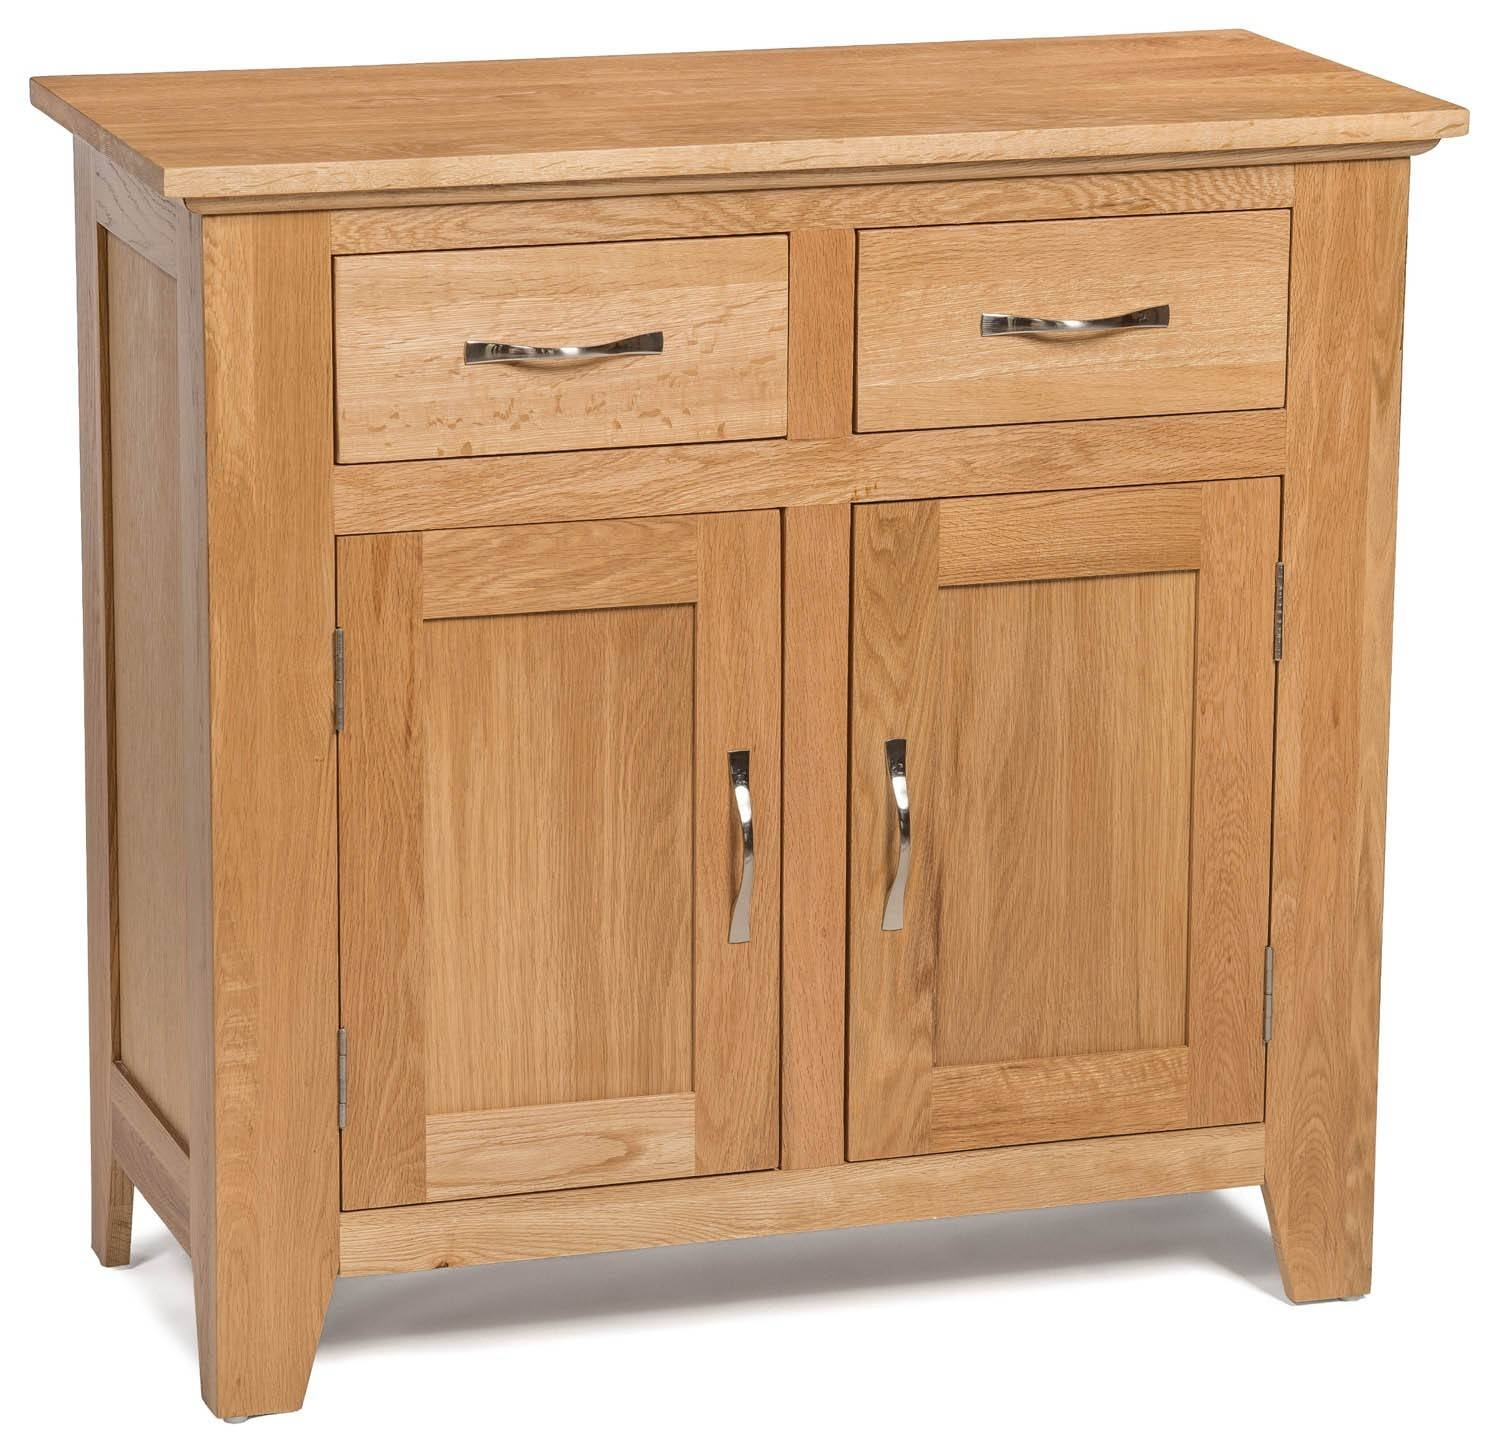 Camberley Oak Small 2 Door 2 Drawer Sideboard | Hallowood Throughout Current 2 Door Sideboards (#3 of 15)